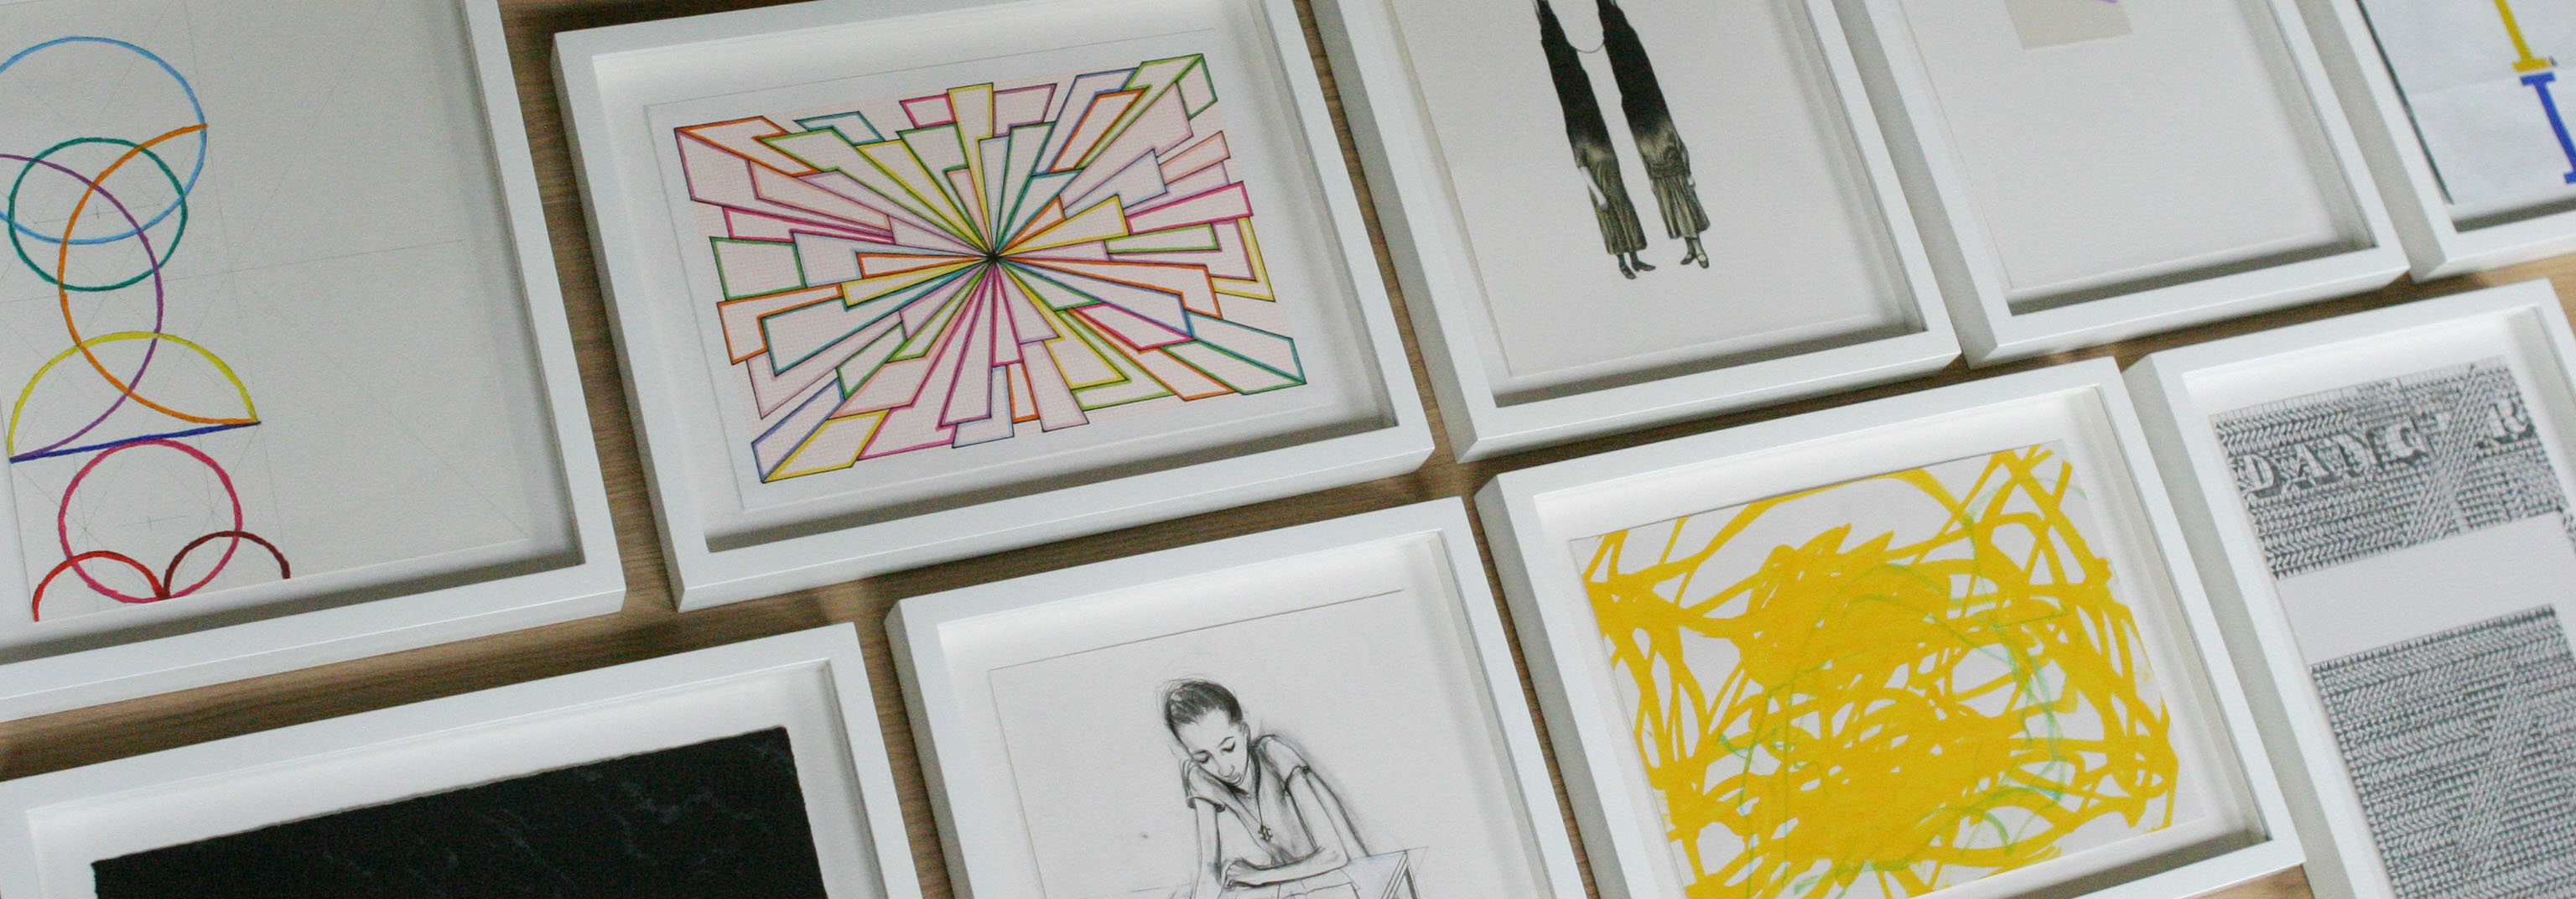 Framed drawings from the Drwaing Room Bienalle 2015